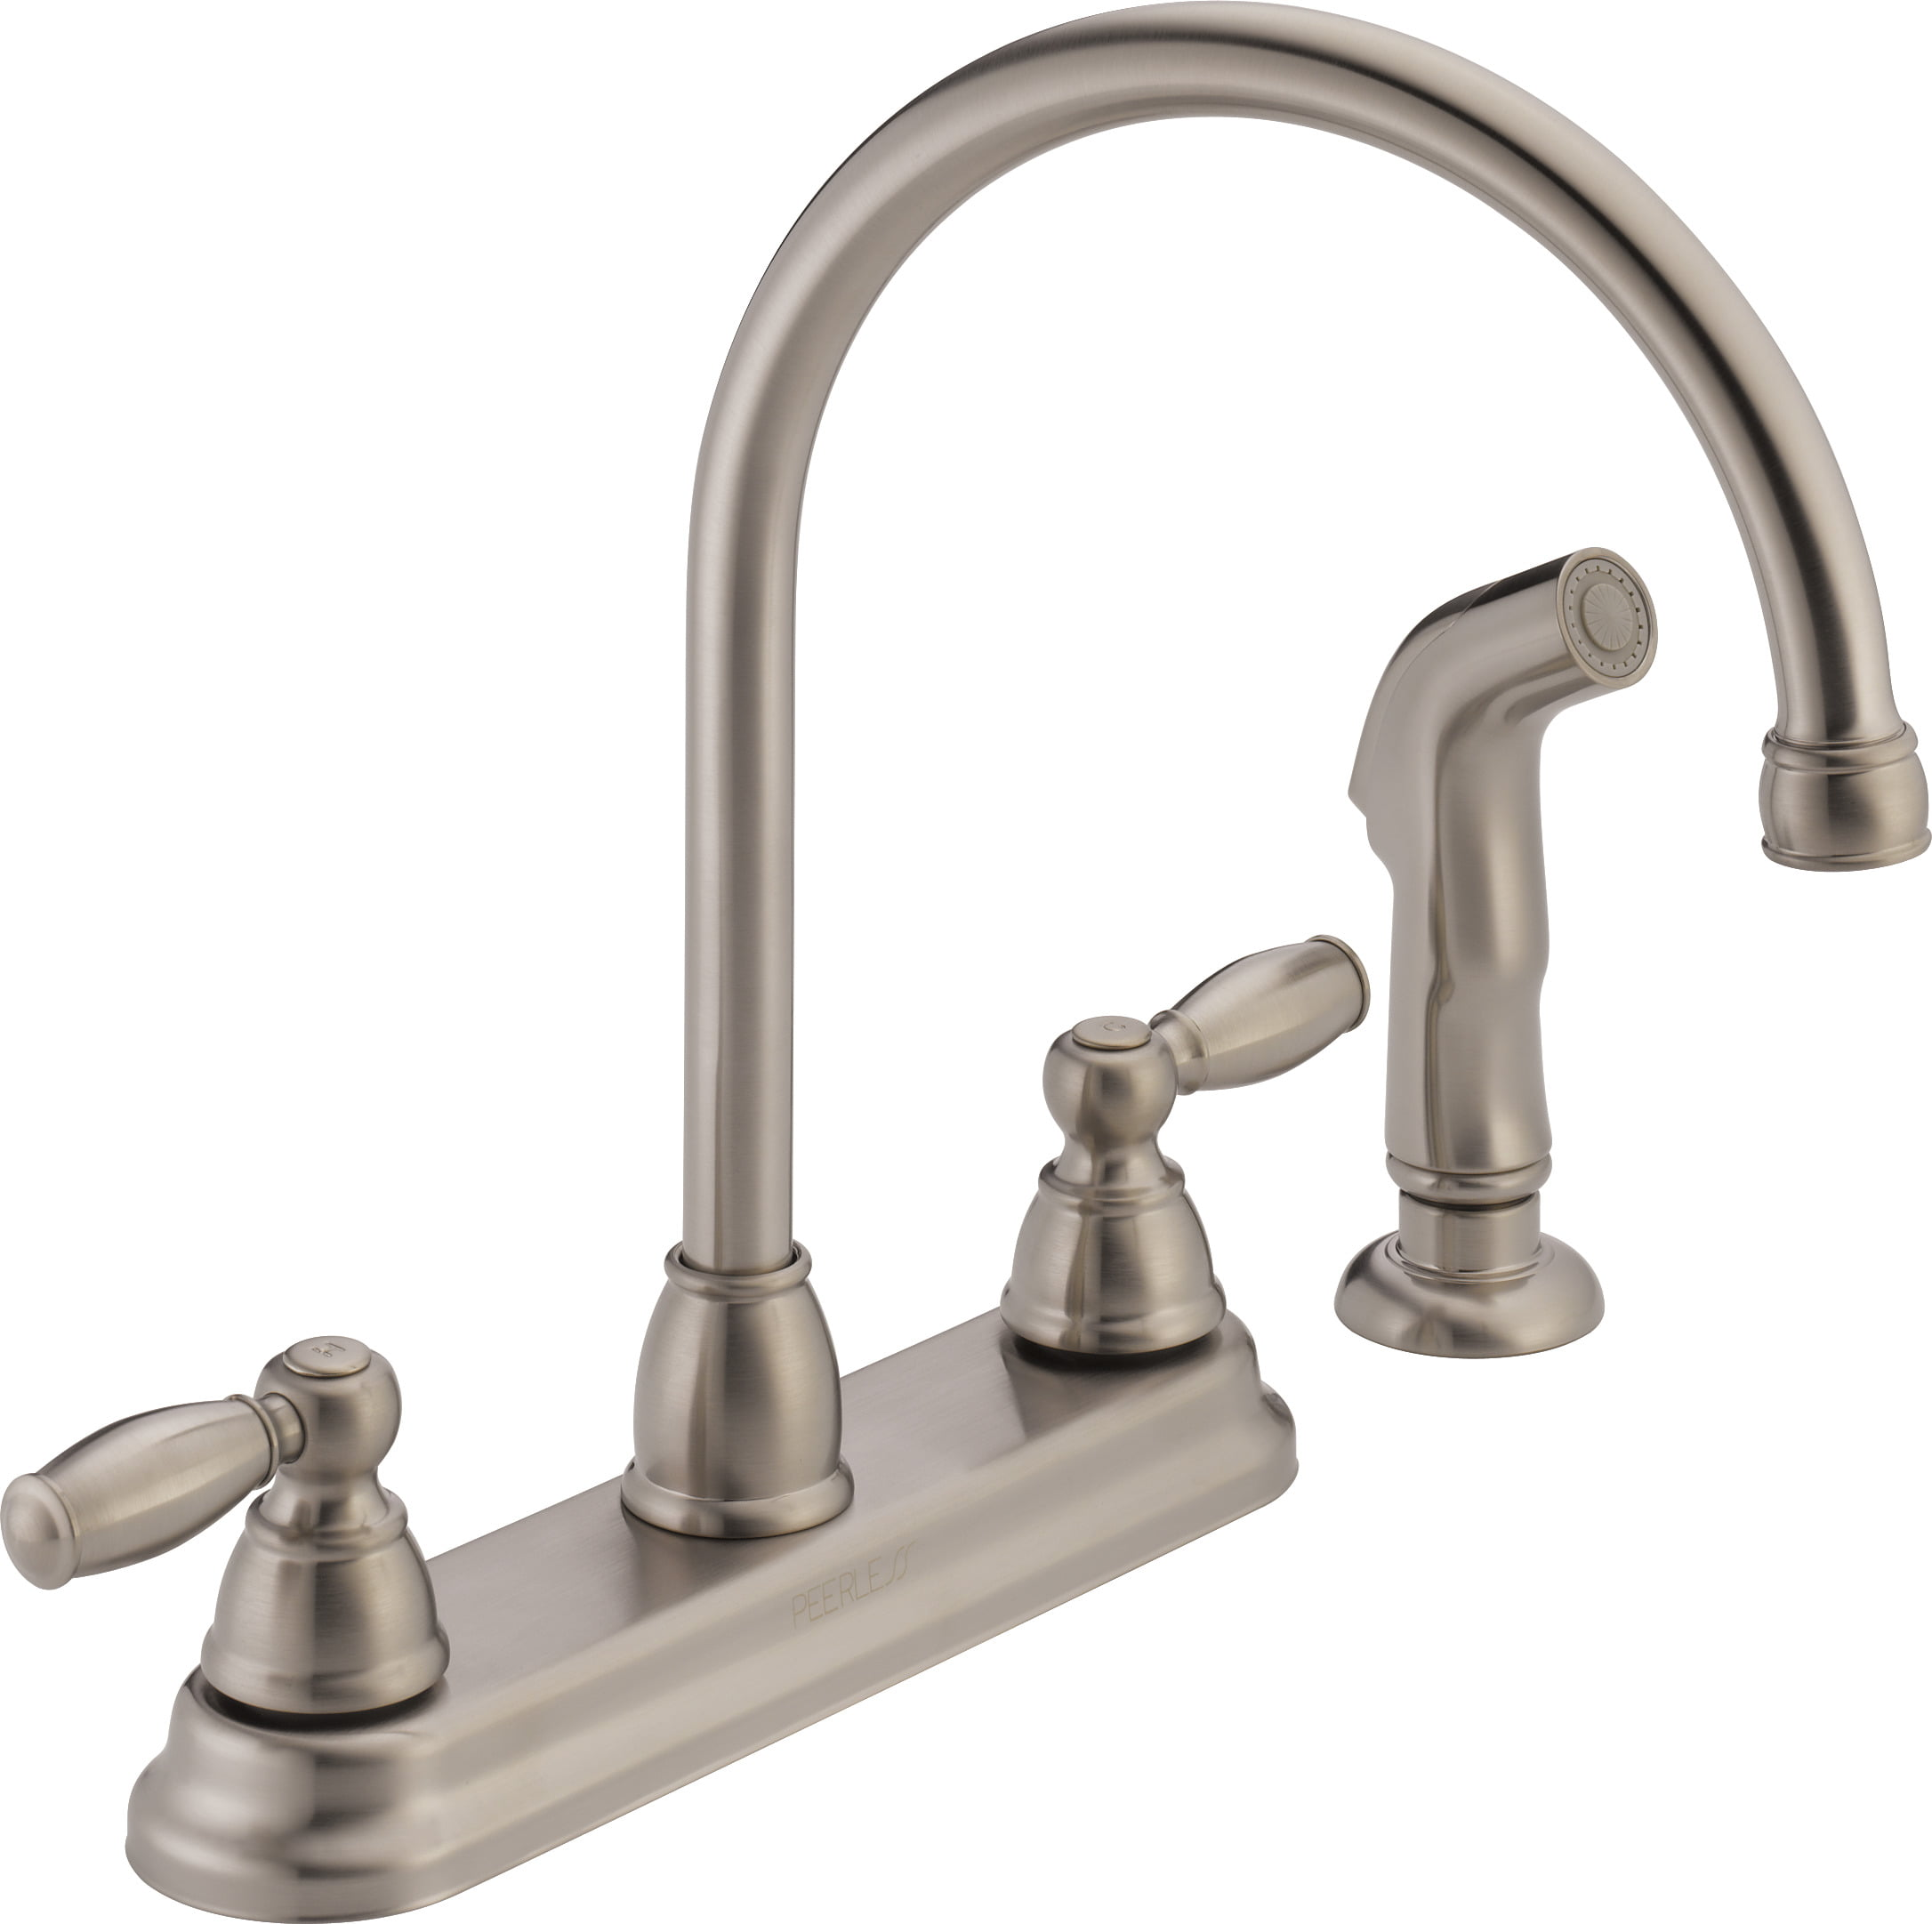 Peerless Apex Two Handle Kitchen Faucet with Side Sprayer in Stainless P299575LF-SS-W